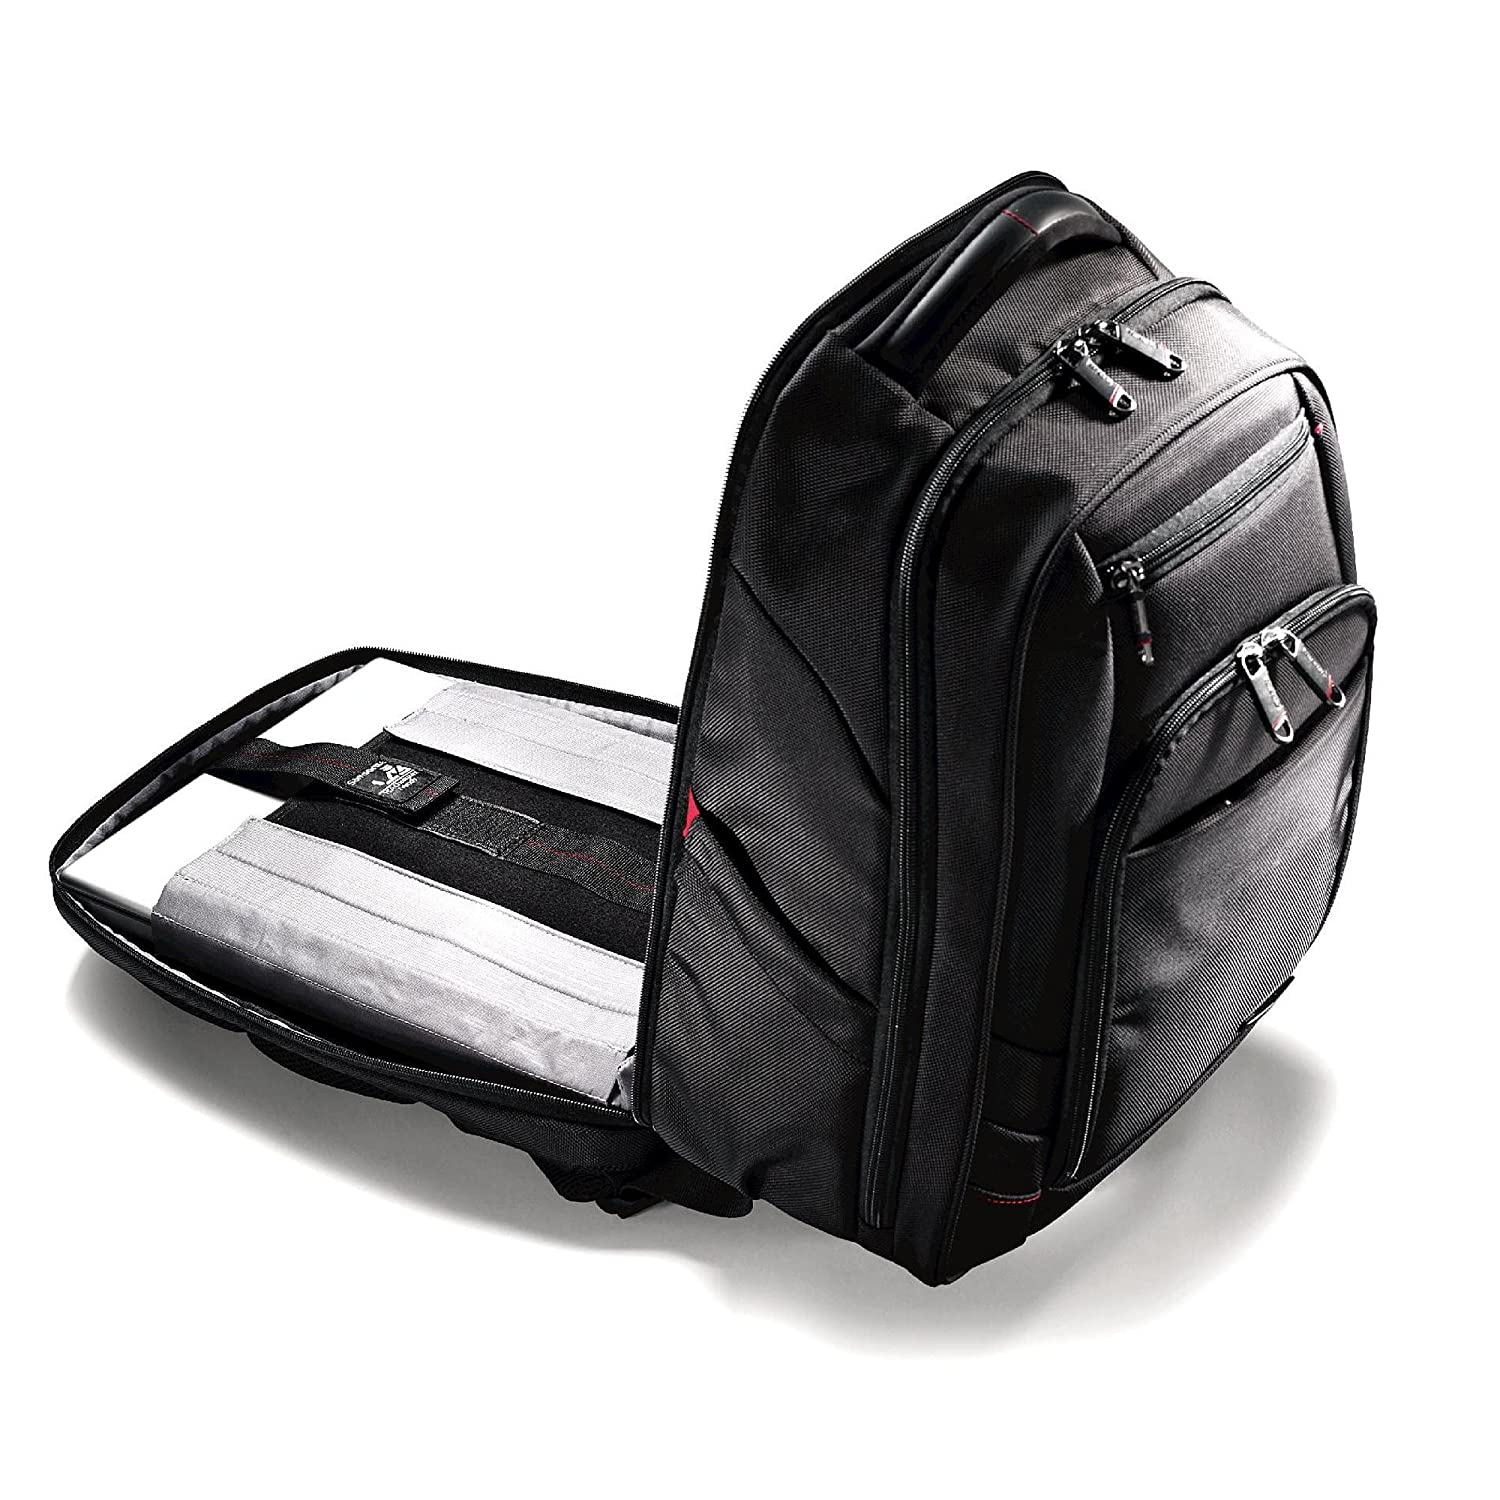 Amazon.com: Samsonite Xenon 2 Checkpoint Friendly PFT Laptop Backpack: Computers & Accessories